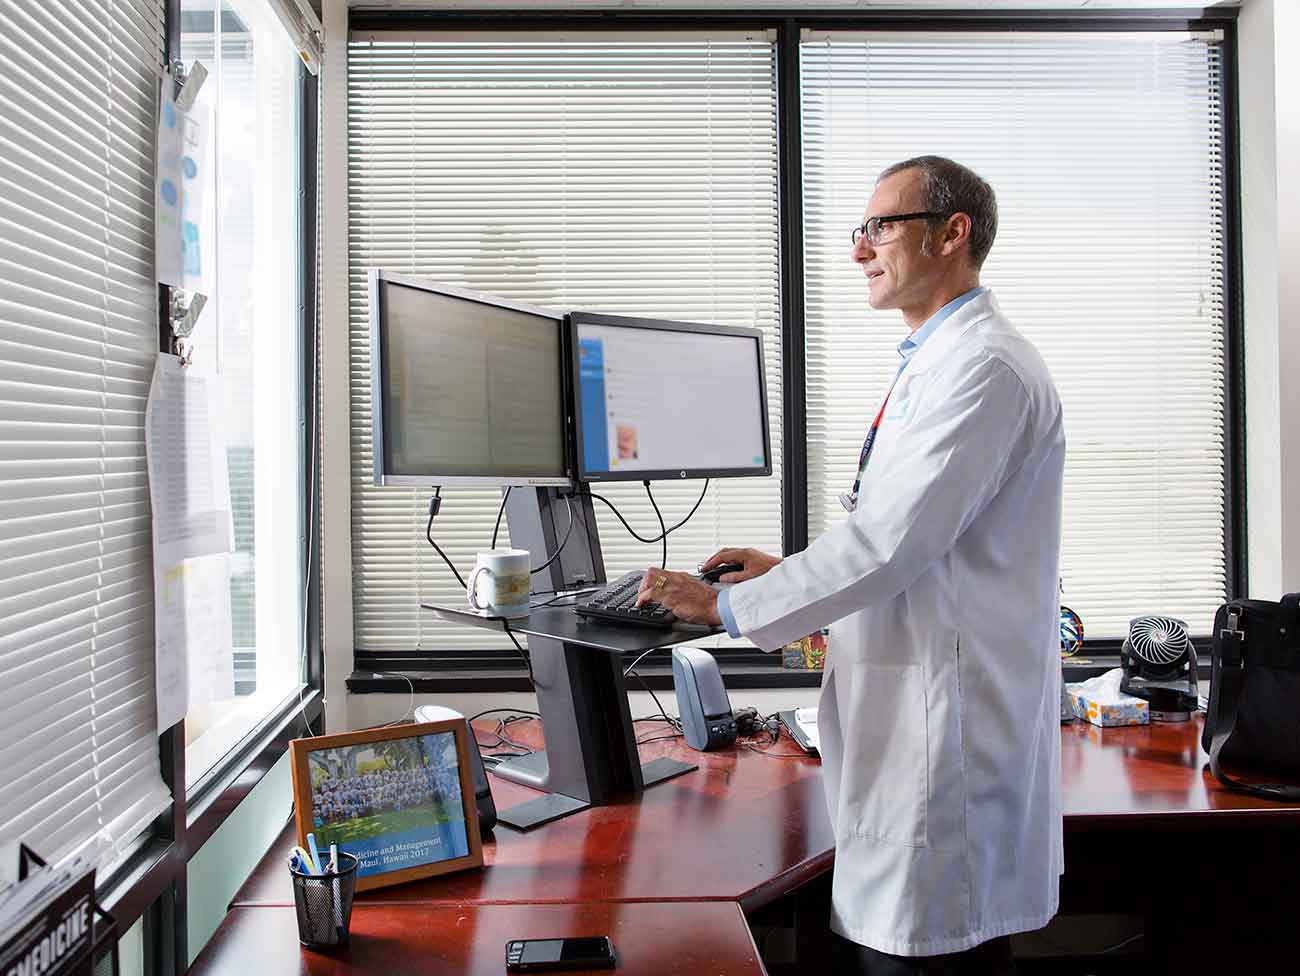 man wearing a white doctors coat standing at a computer with dual monitors